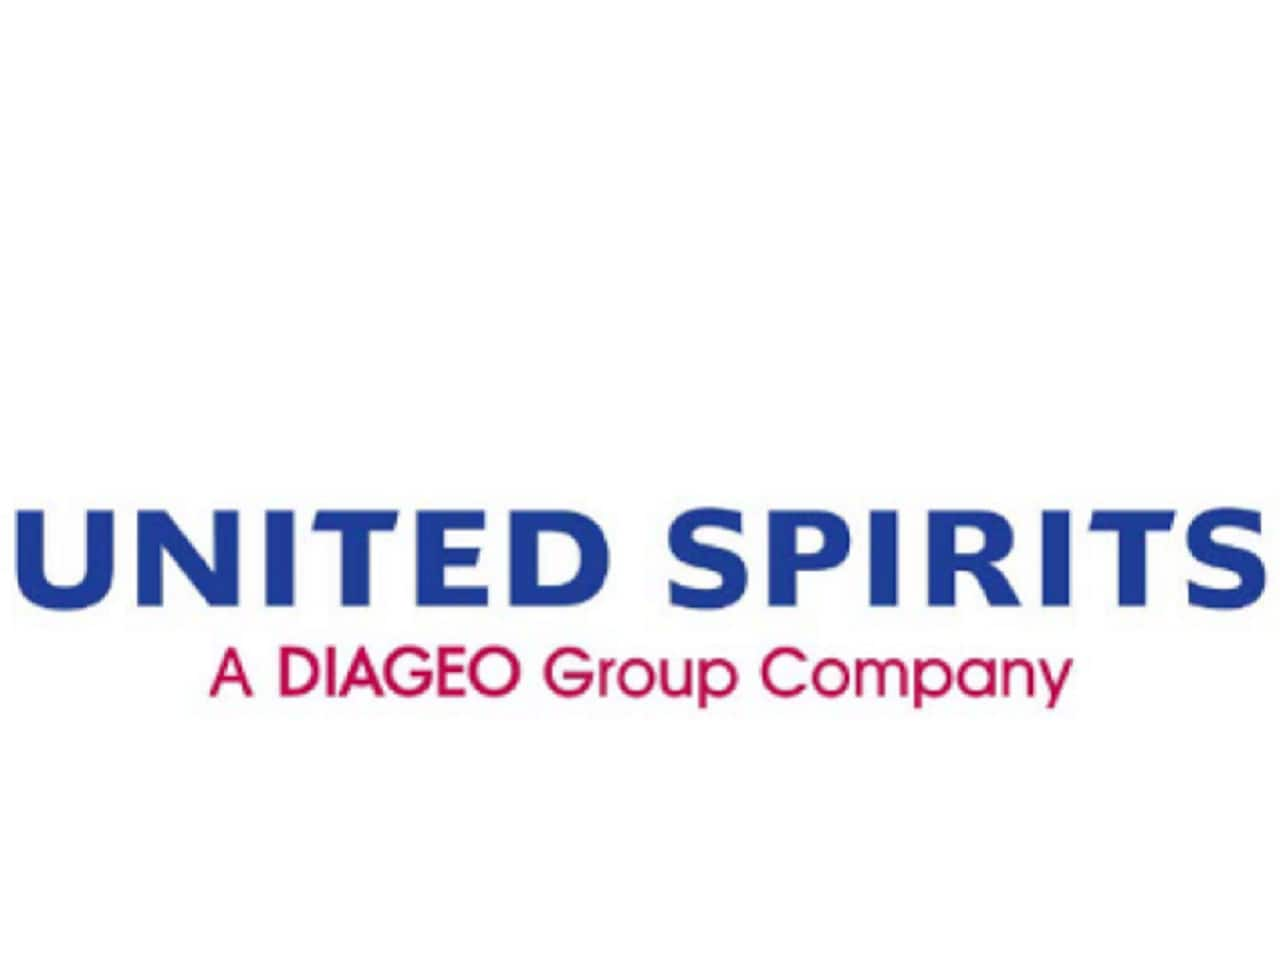 Diageo-Backed USL May Look To Sell Mass Brands Bagpiper, Old Tavern, White Mischief & Haywards